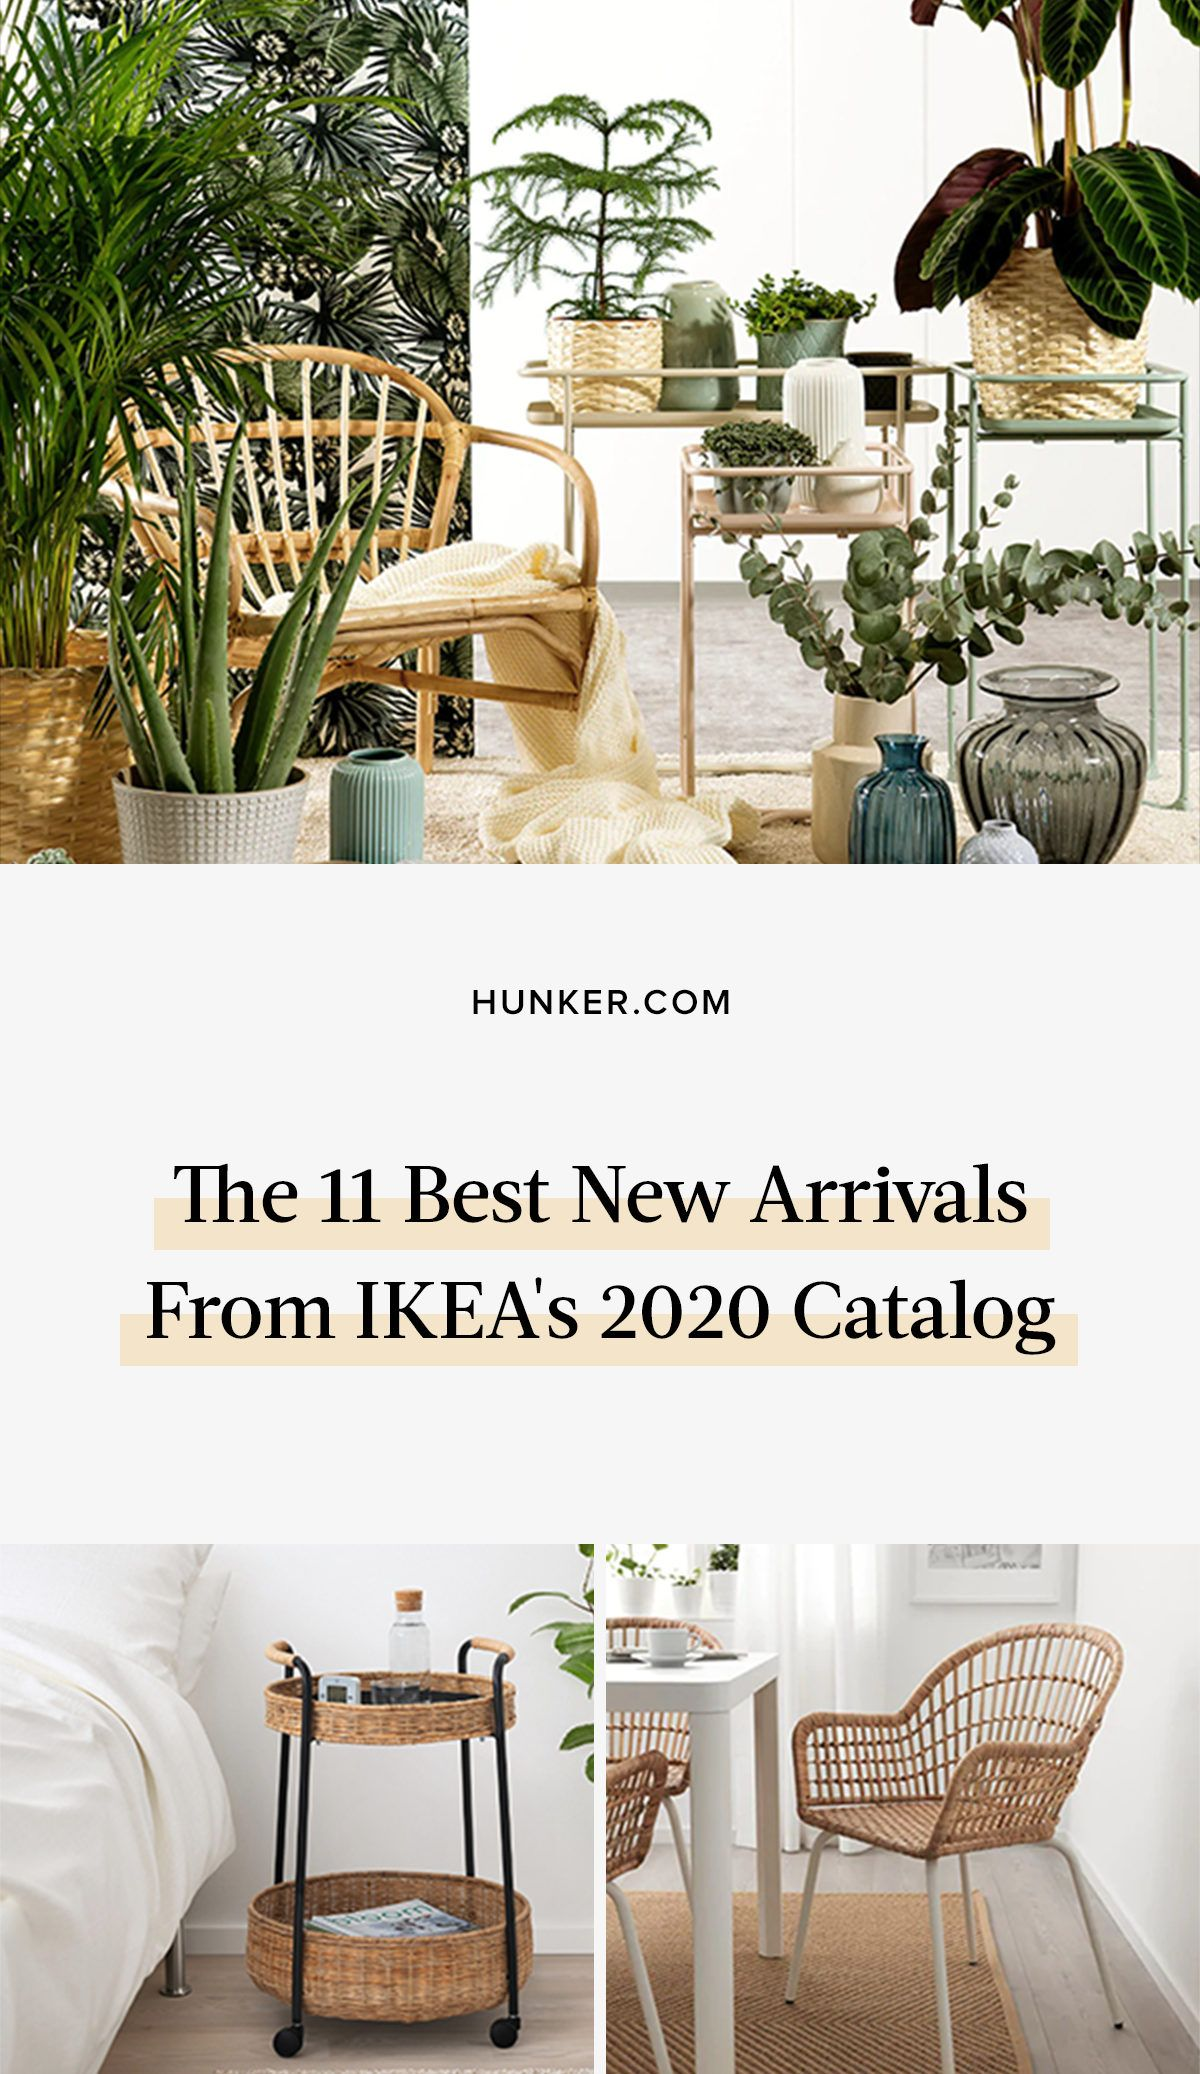 home decor catalogs list the 11 best new arrivals from ikea s 2020 catalog  with images  arrivals from ikea s 2020 catalog